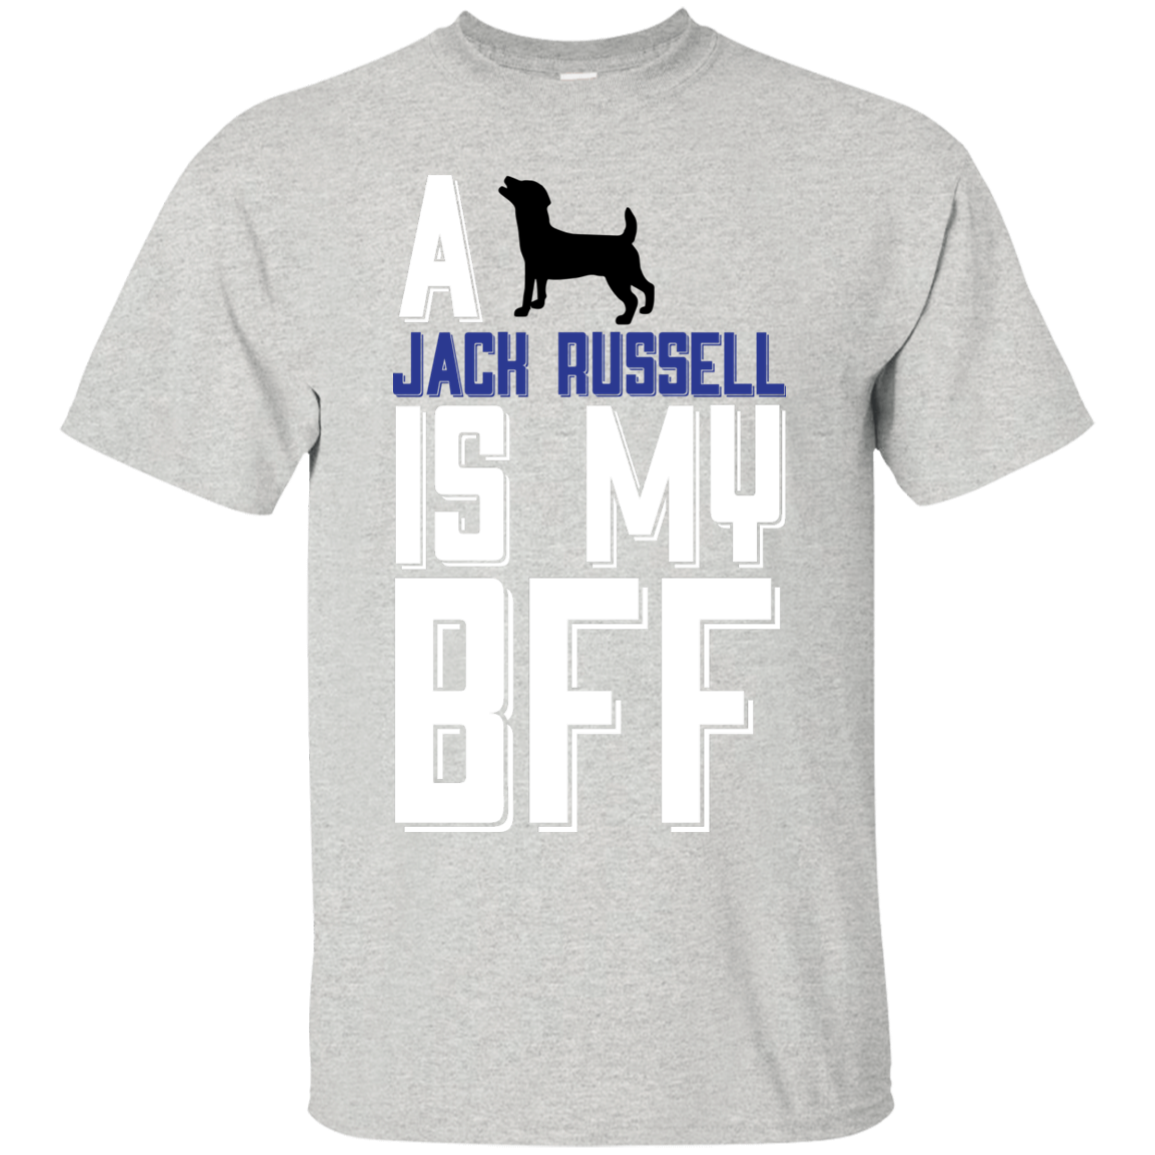 A Jack Russell Is My Bff  funny T-Shirt Hoodie Long sleeve Sweatshirt